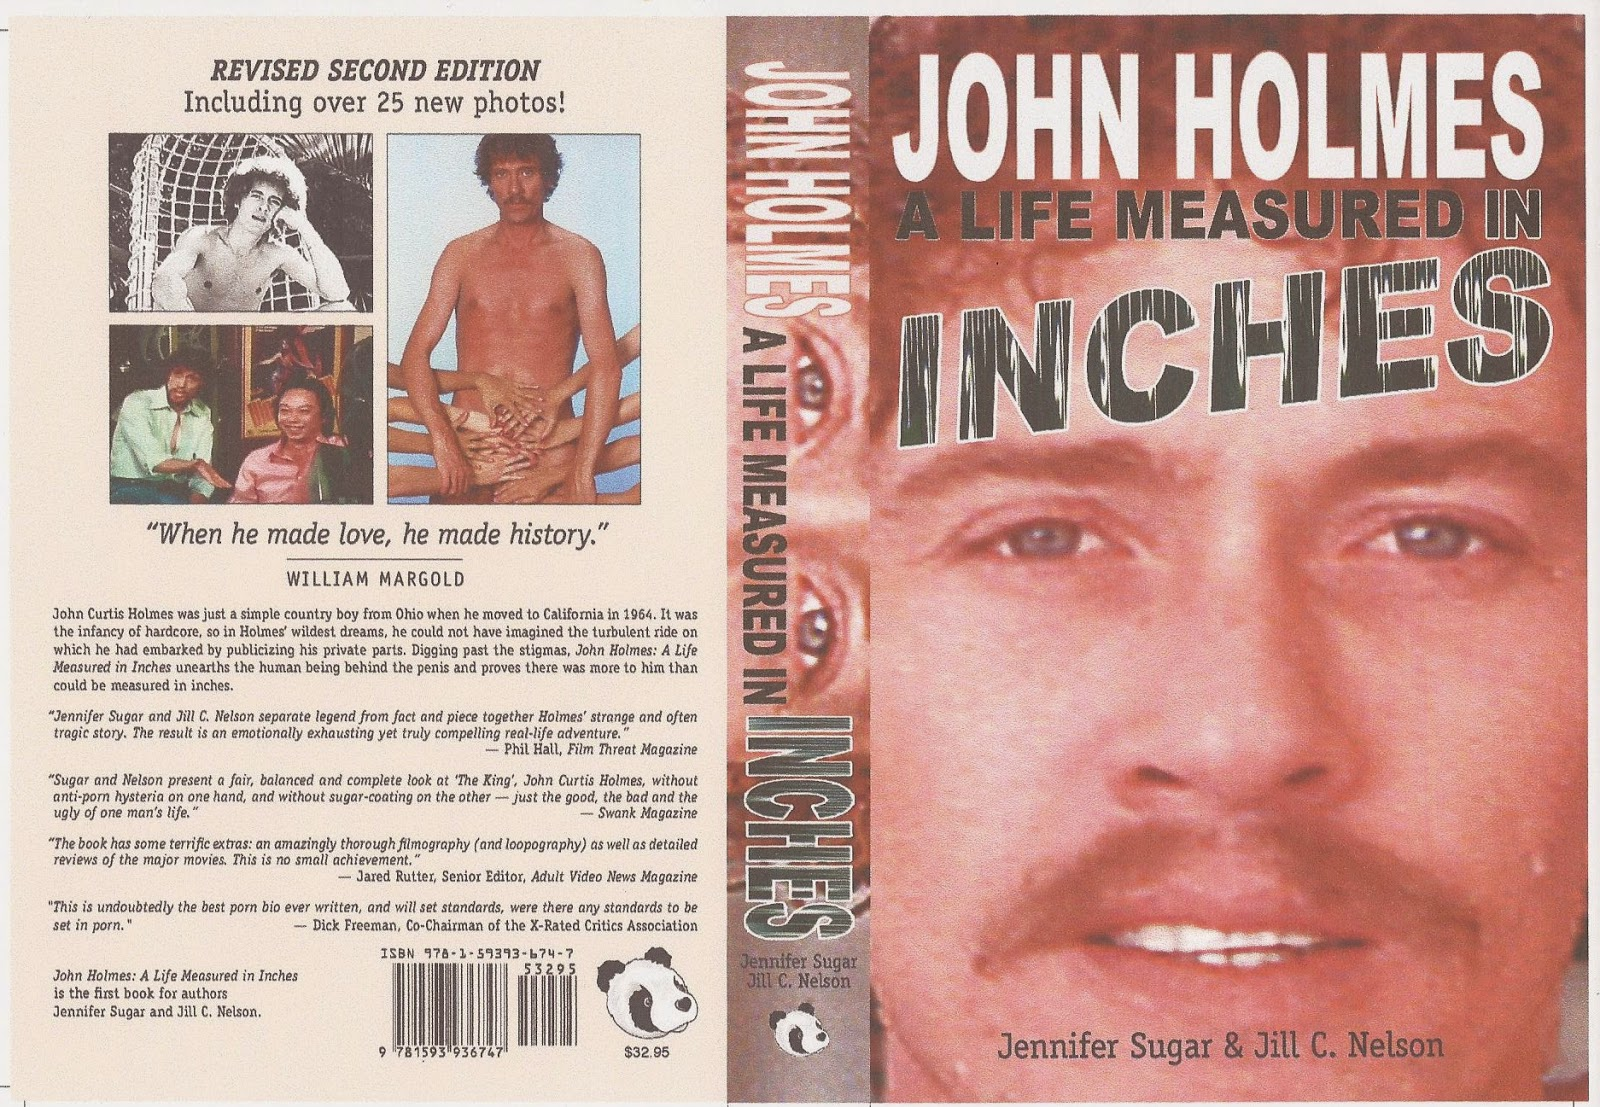 Muschi hat pictures of john holmes penis have